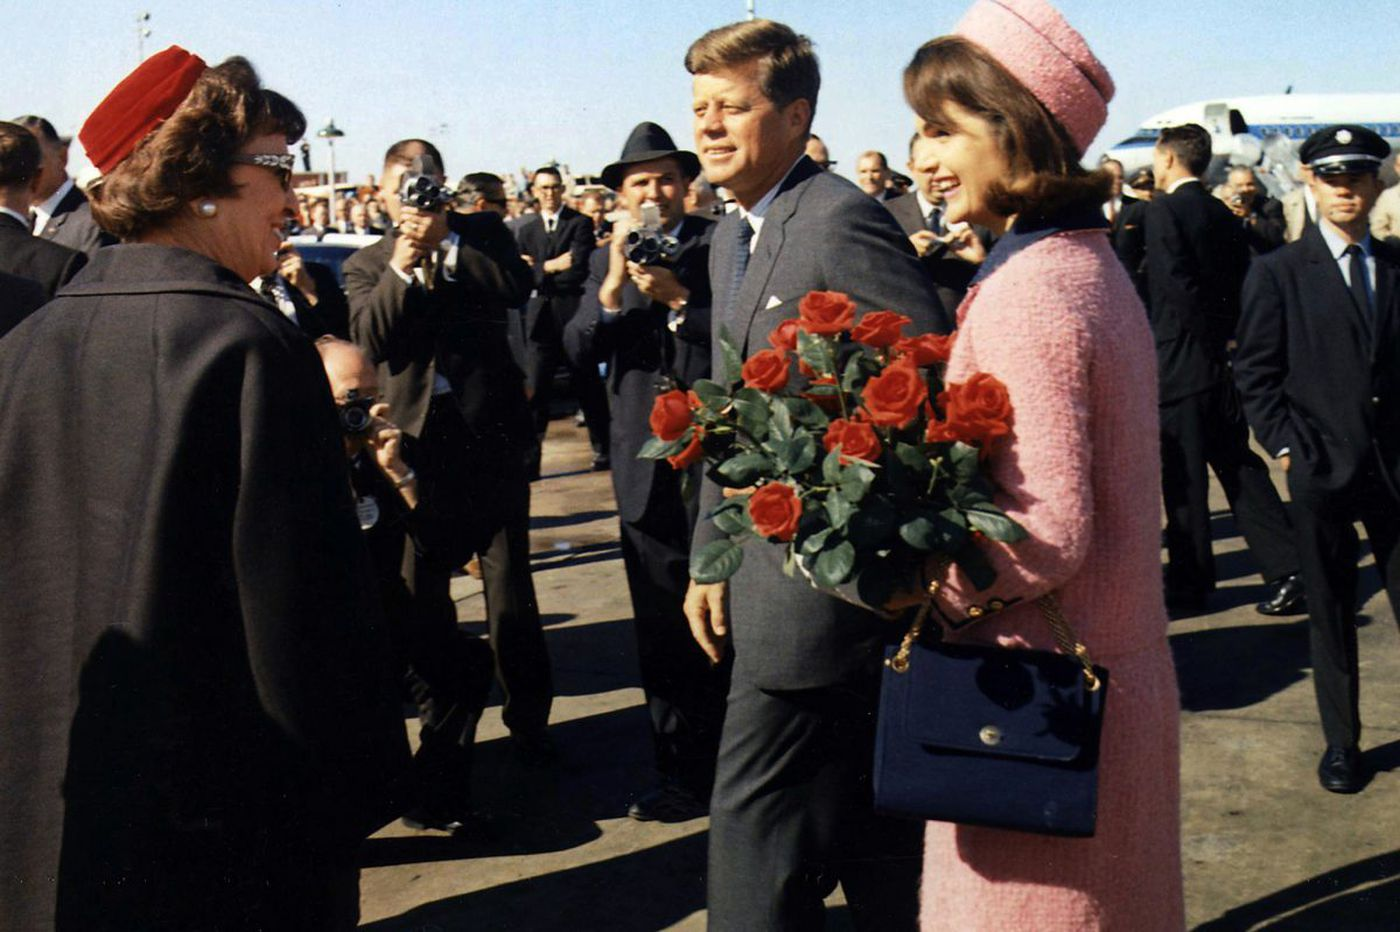 The latest Kennedy files spark memories of a day like no other